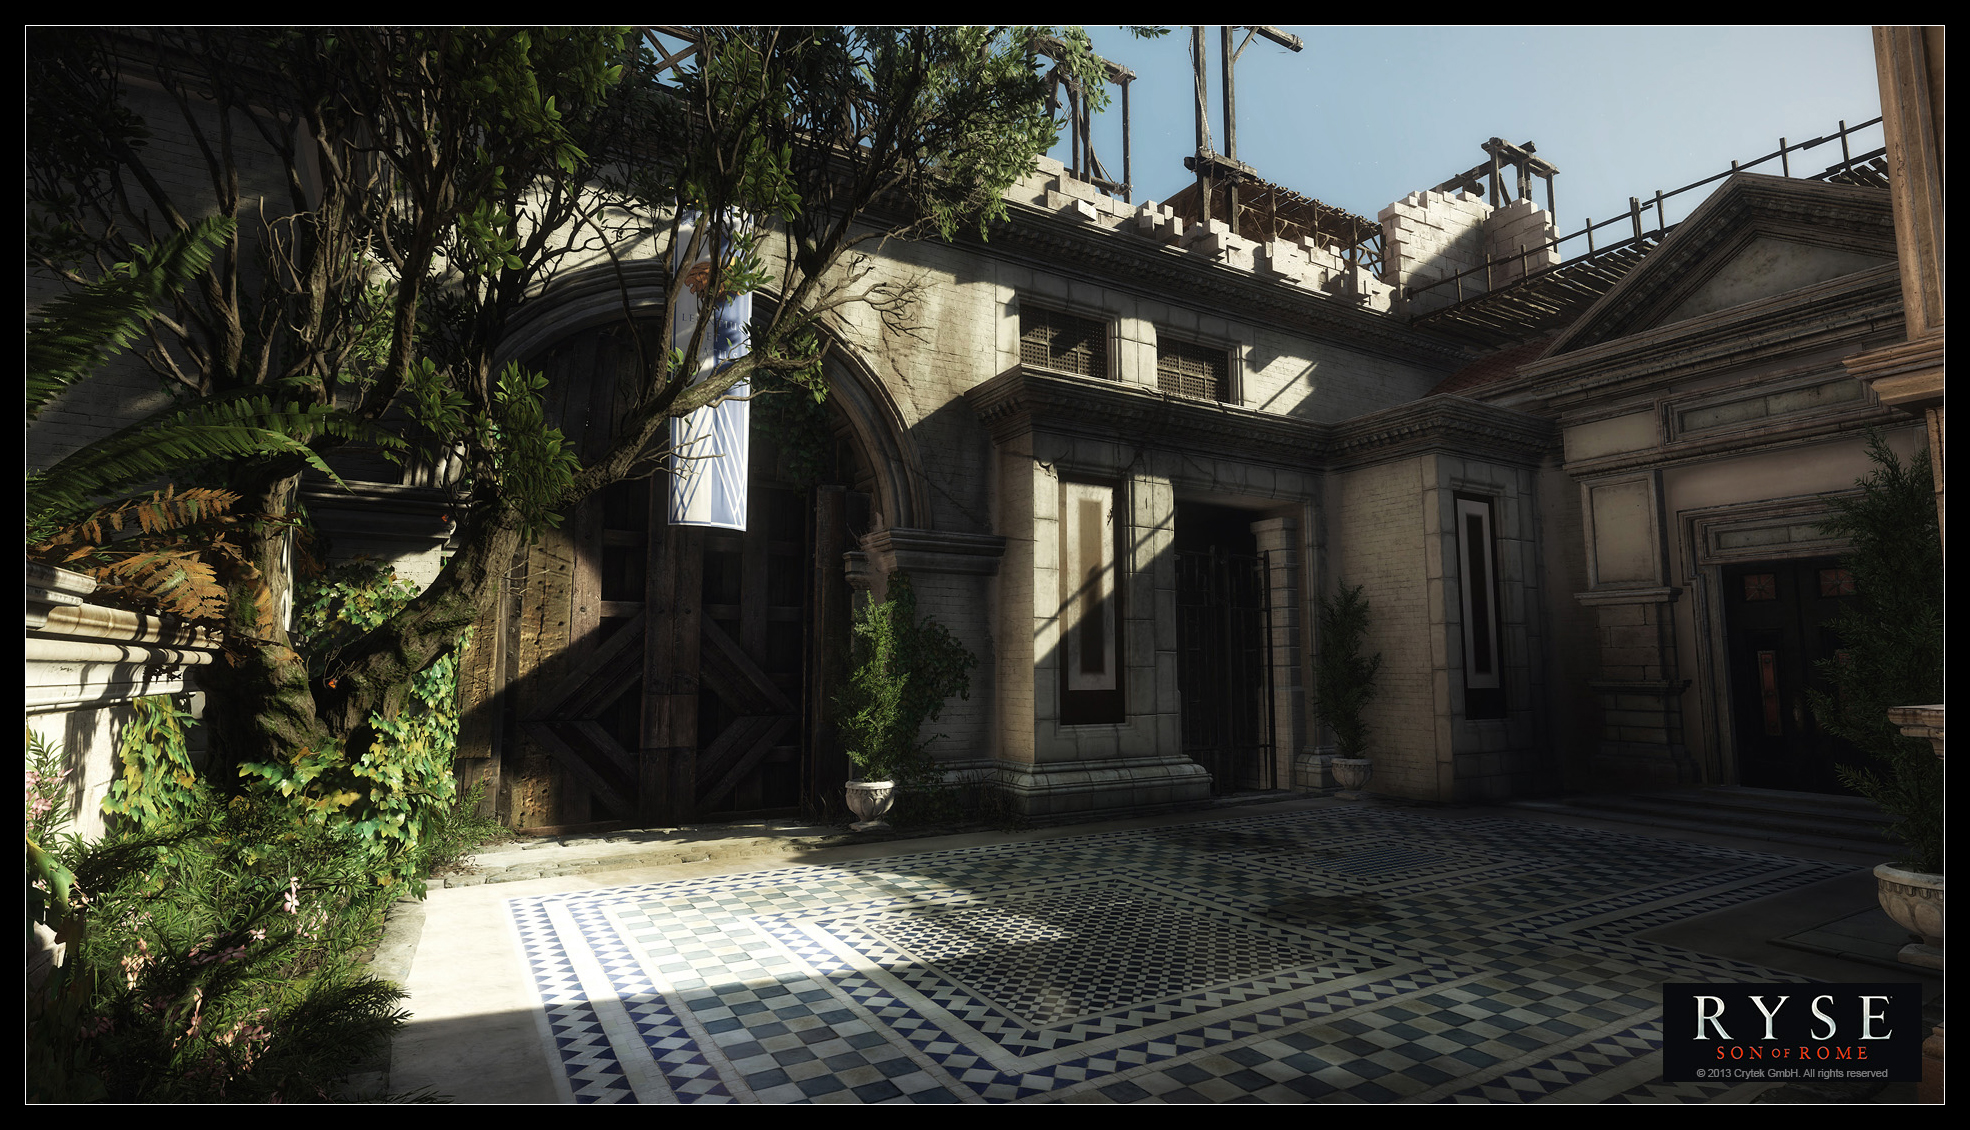 Design A Room Game Ryse Son Of Rome Microsoft Crytek Image 9 By